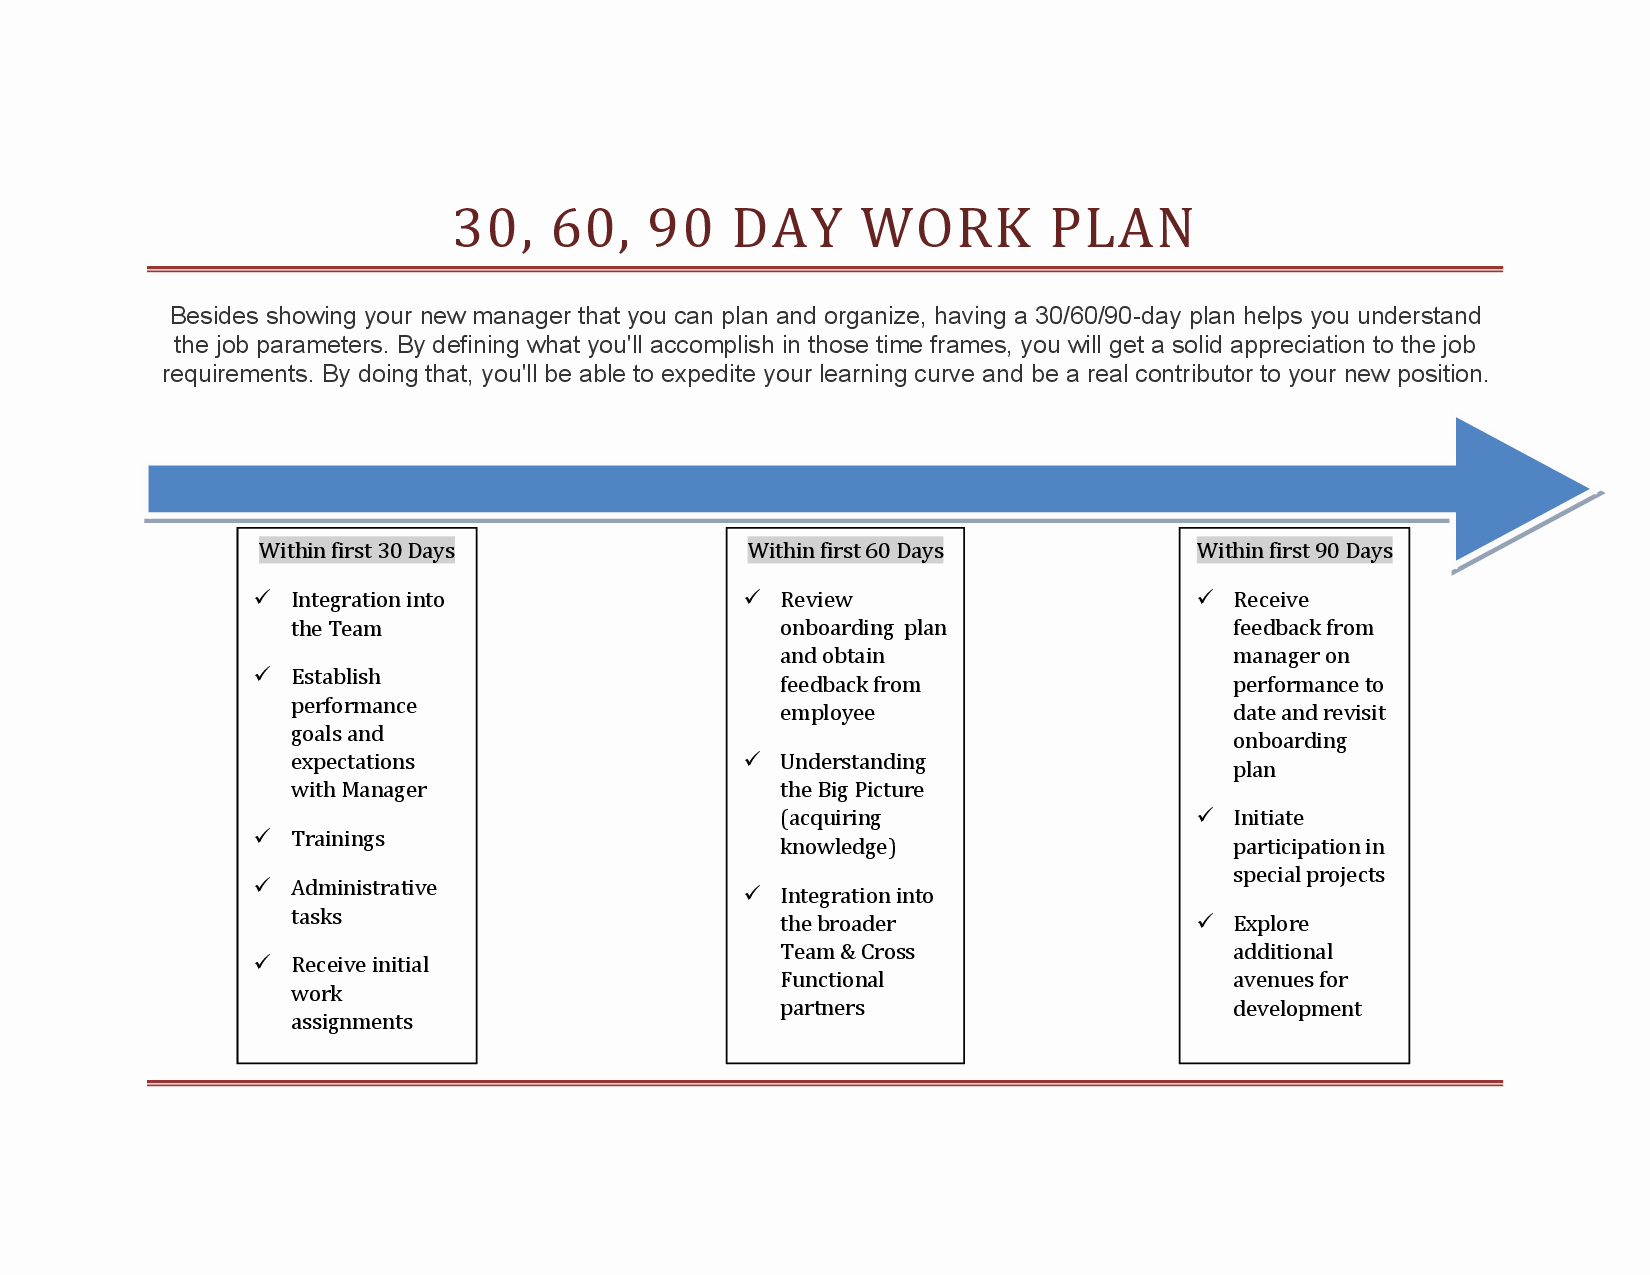 30 60 90 Day Work Plan Template Pdf by Tinammckenna